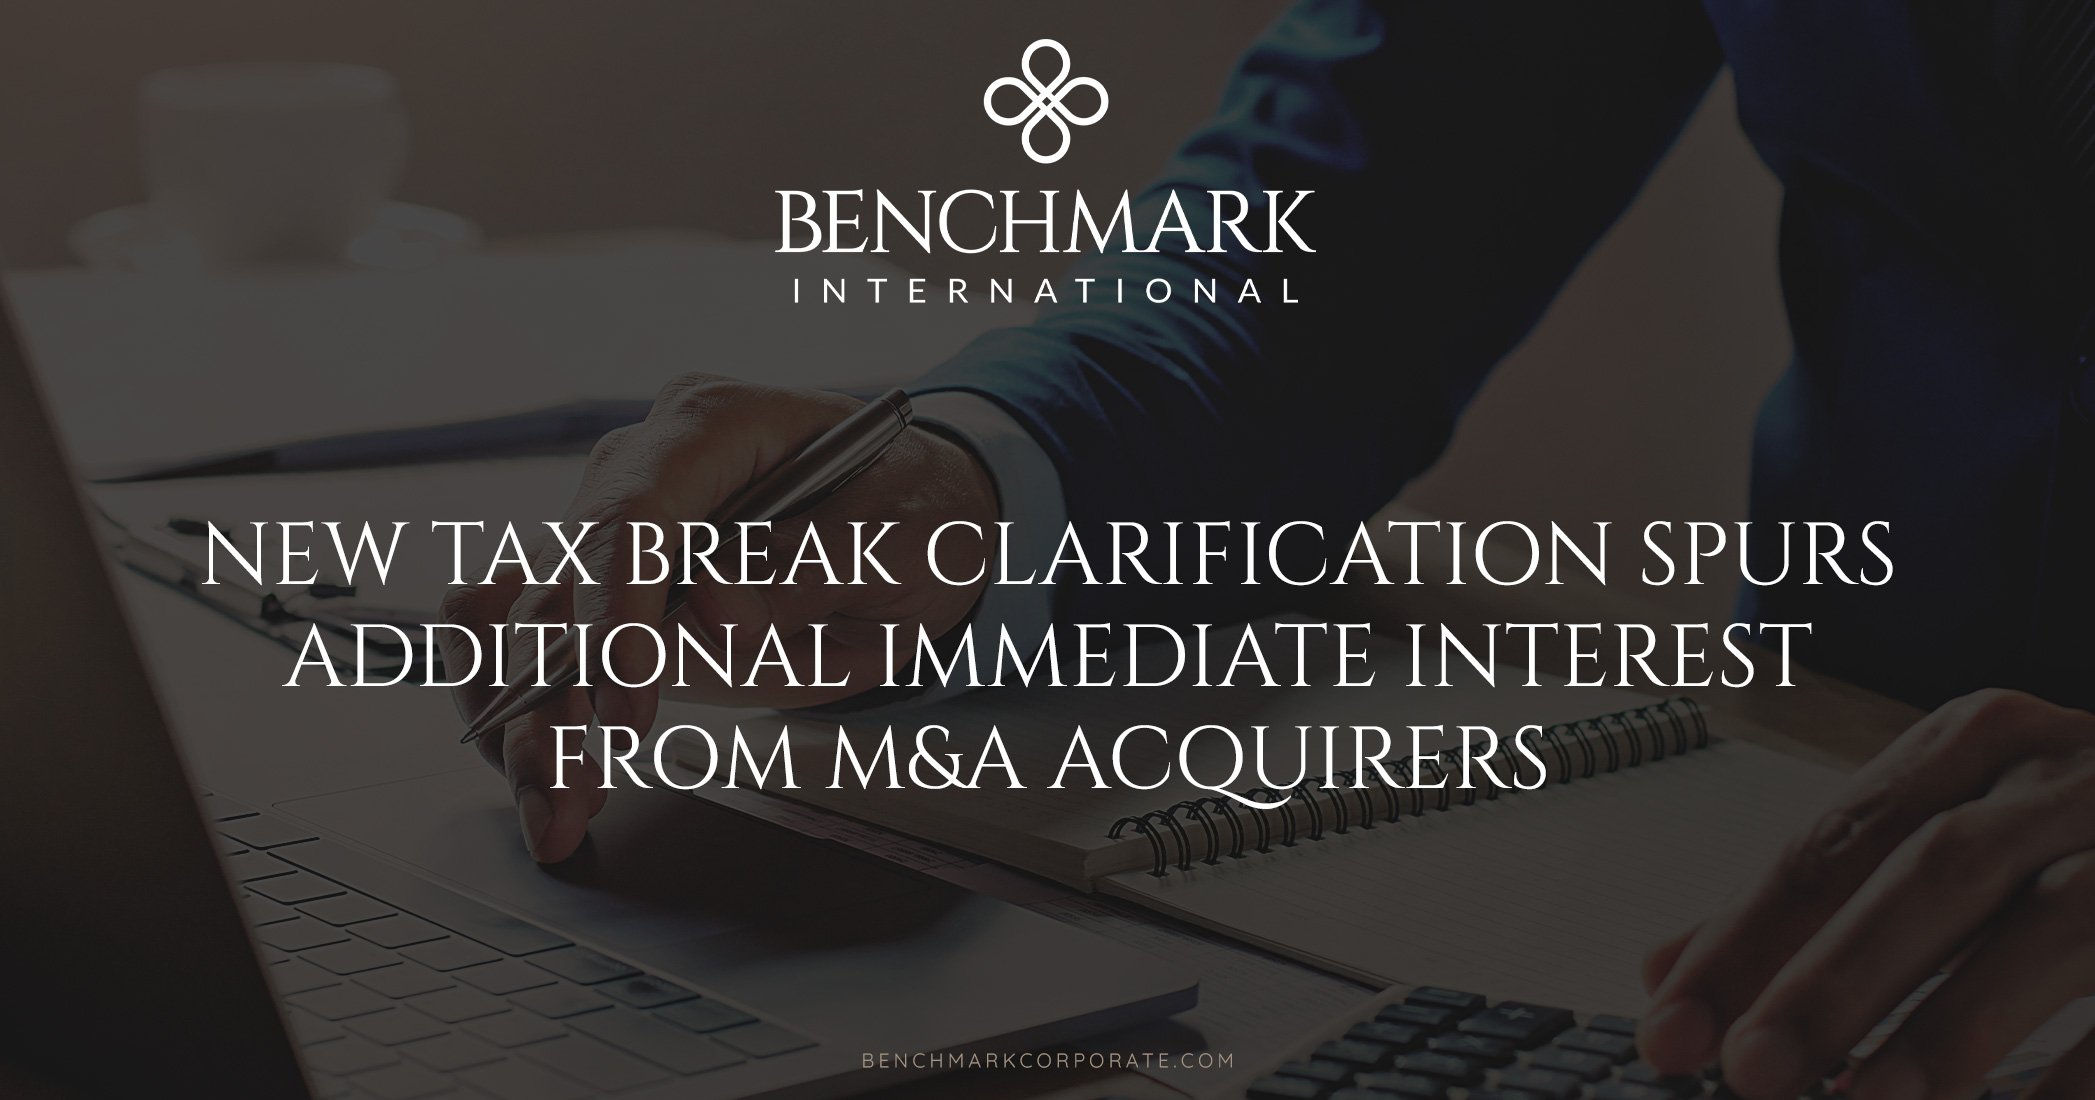 New Tax Break Clarification Spurs Additional Immediate Interest from M&A Acquirers